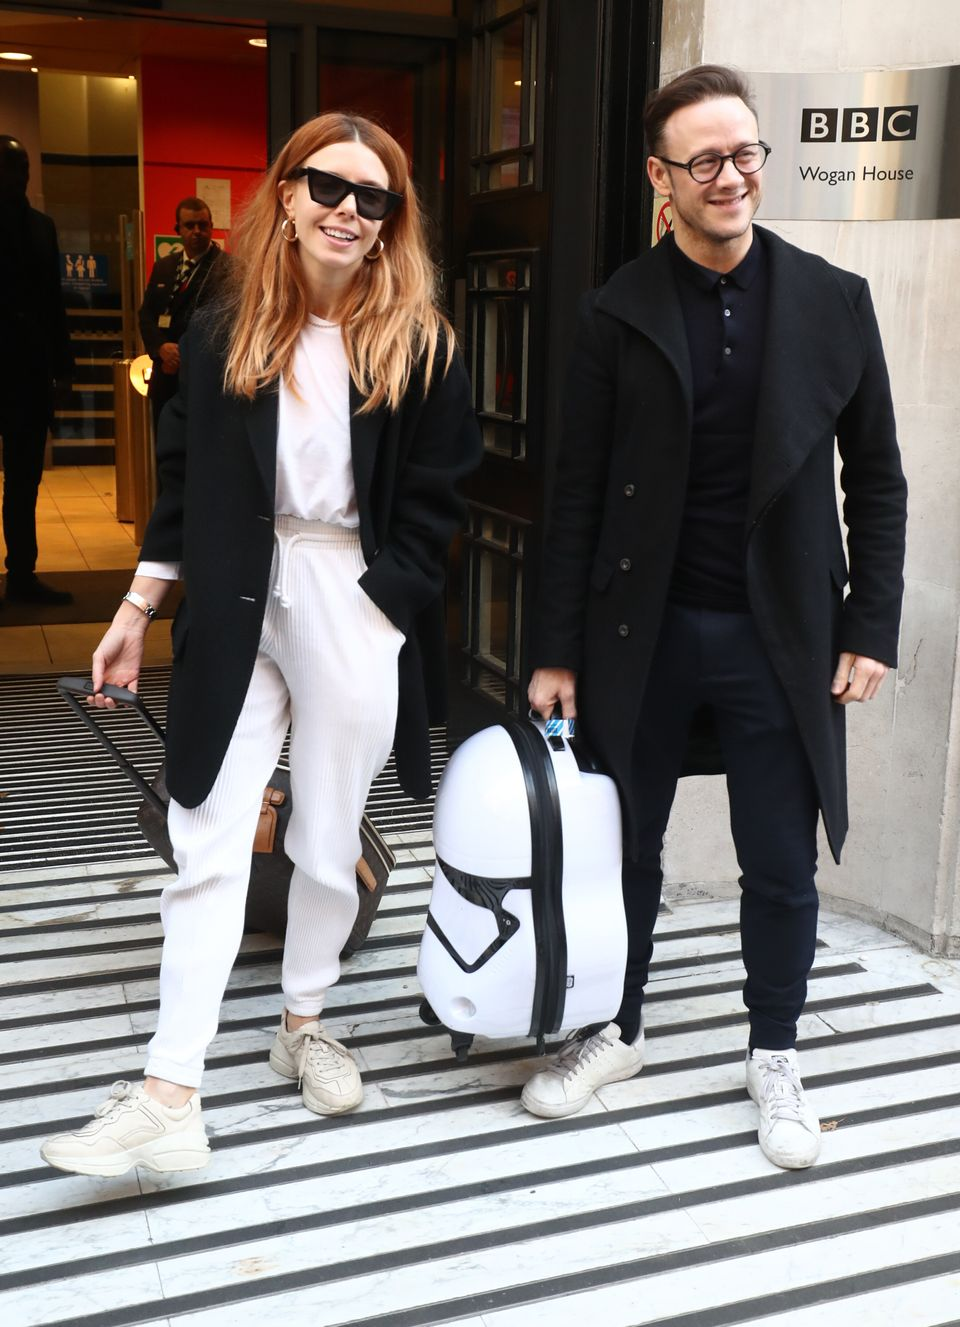 Stacey Dooley and Kevin Clifton pictured in